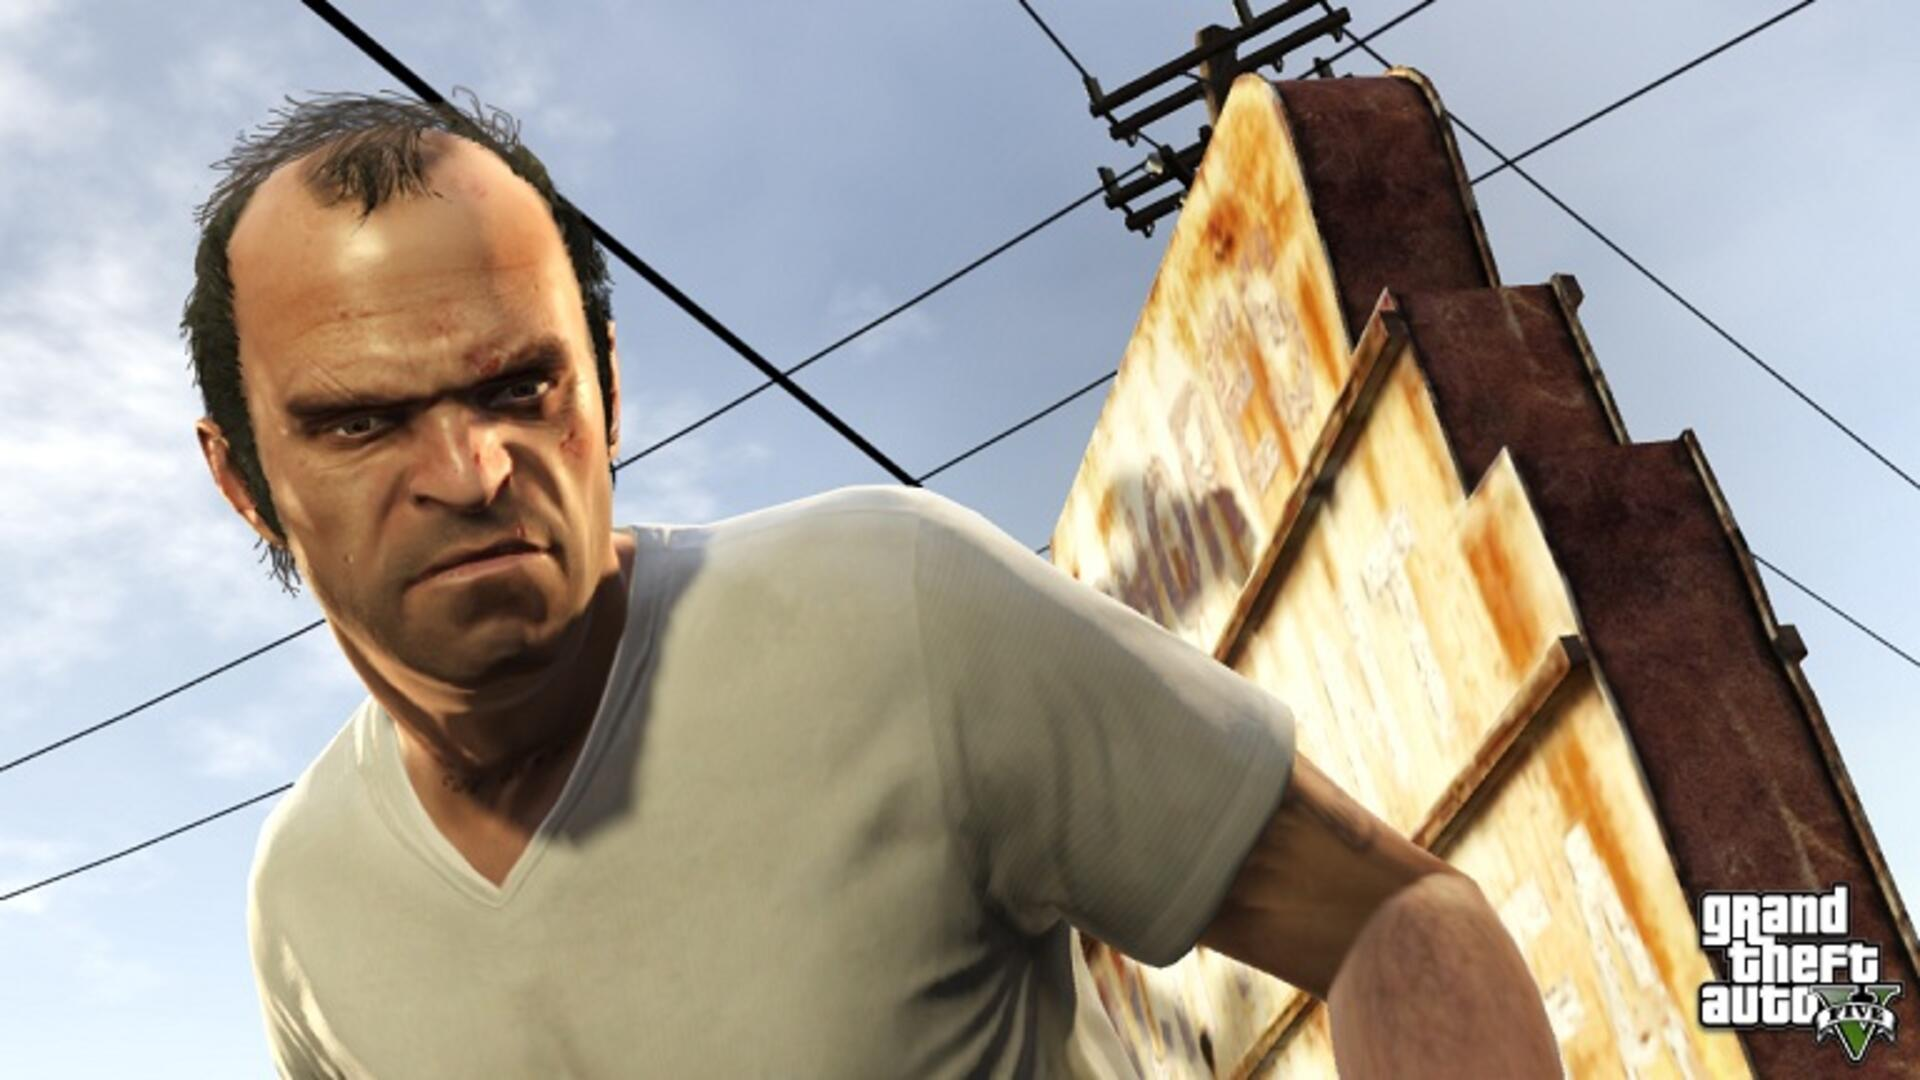 GTA 5 Websites List - Police, Epsilon, Warstock, and More